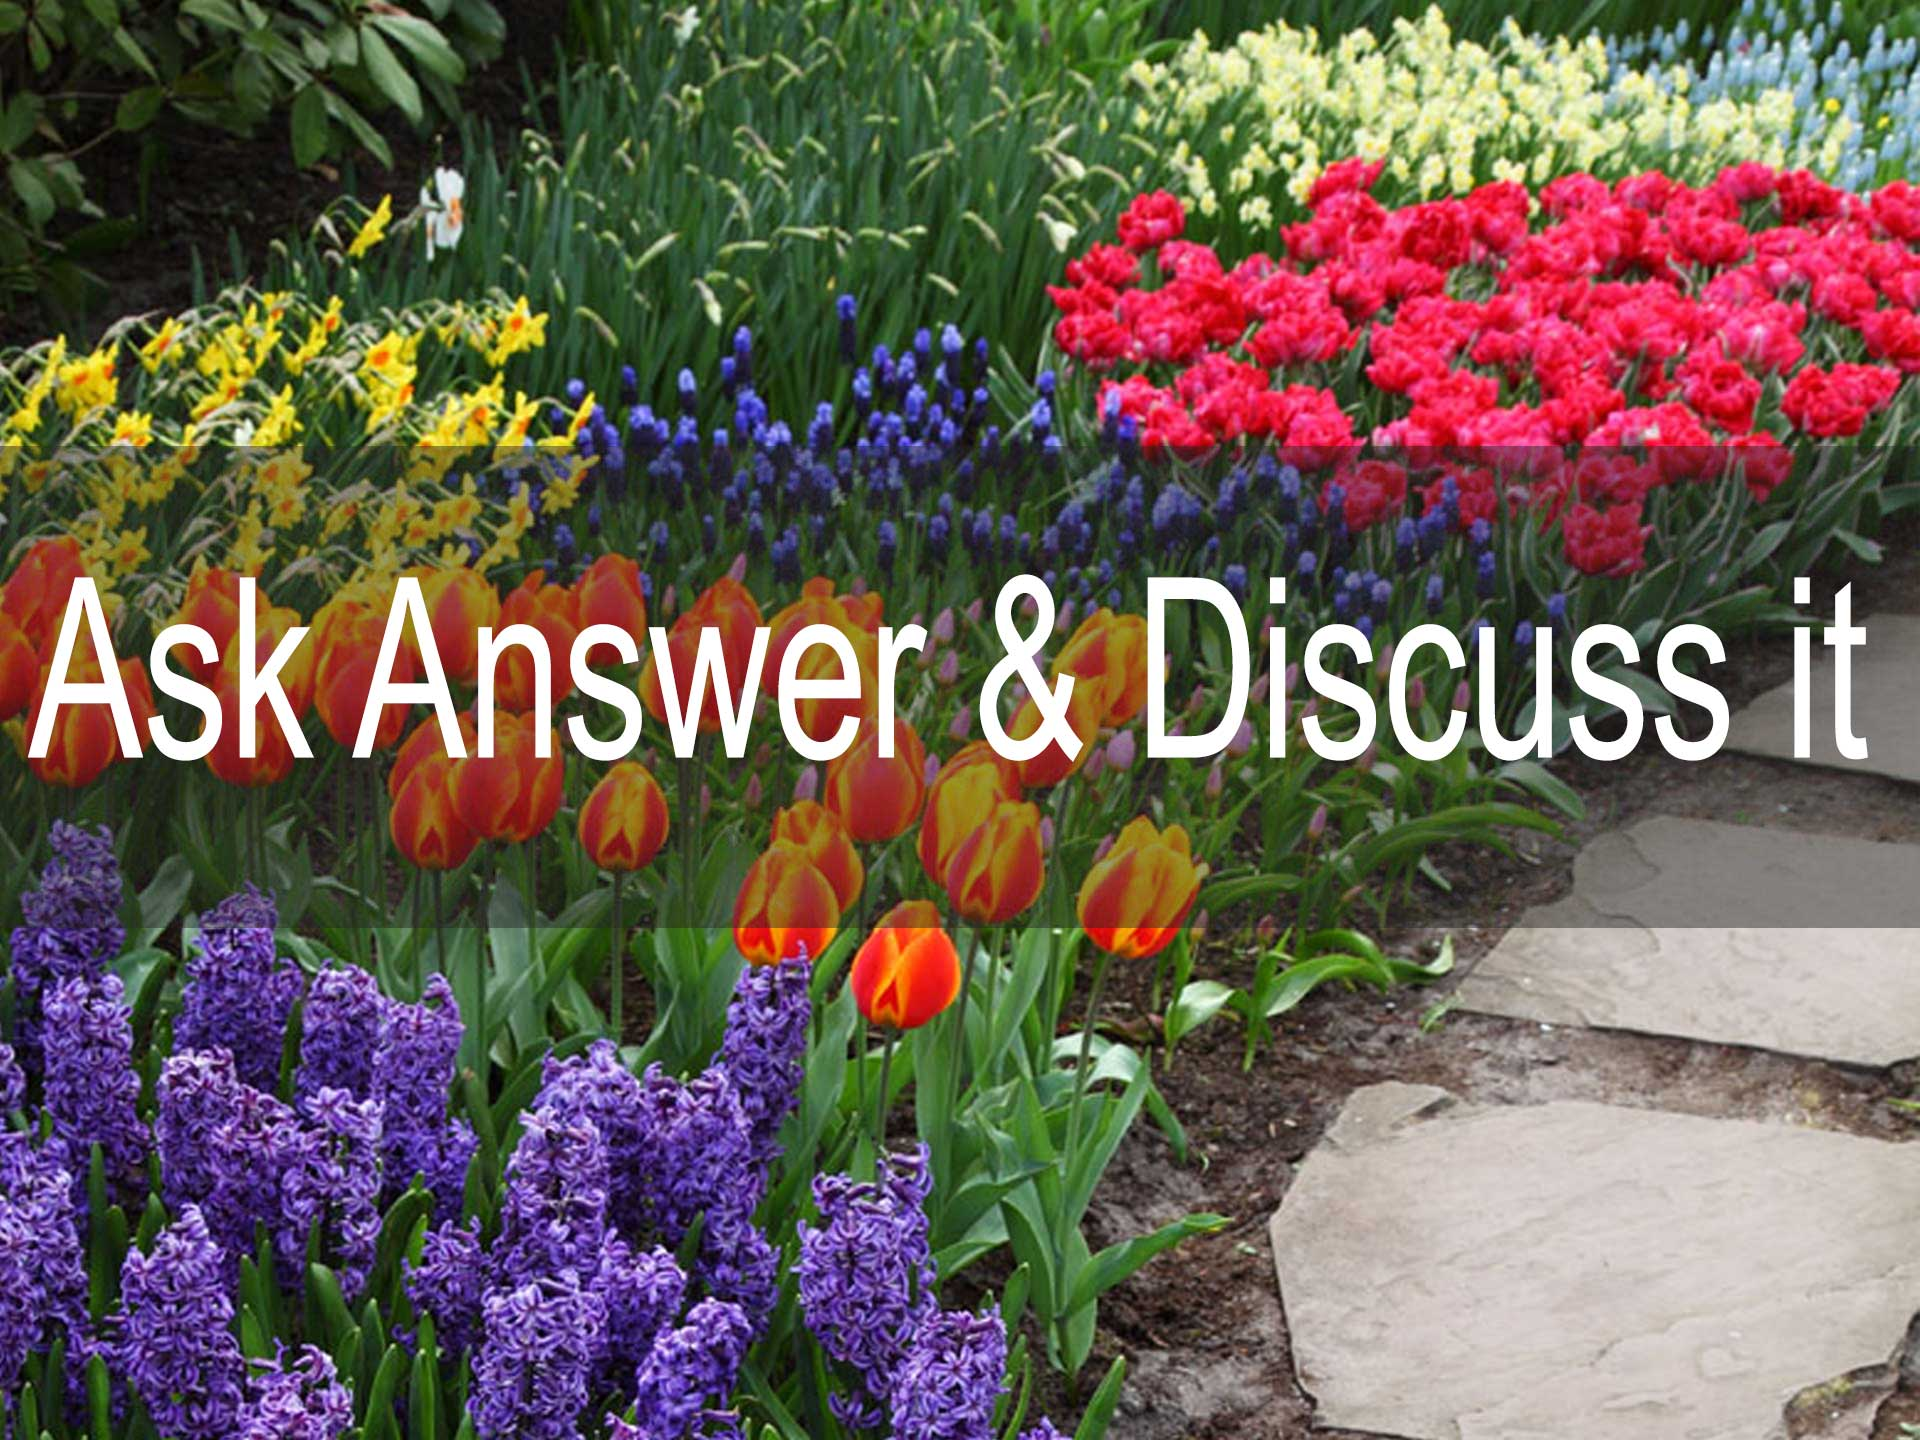 Ask Answer & Discuss it on Australian Gardeners Forum FREE Classifieds